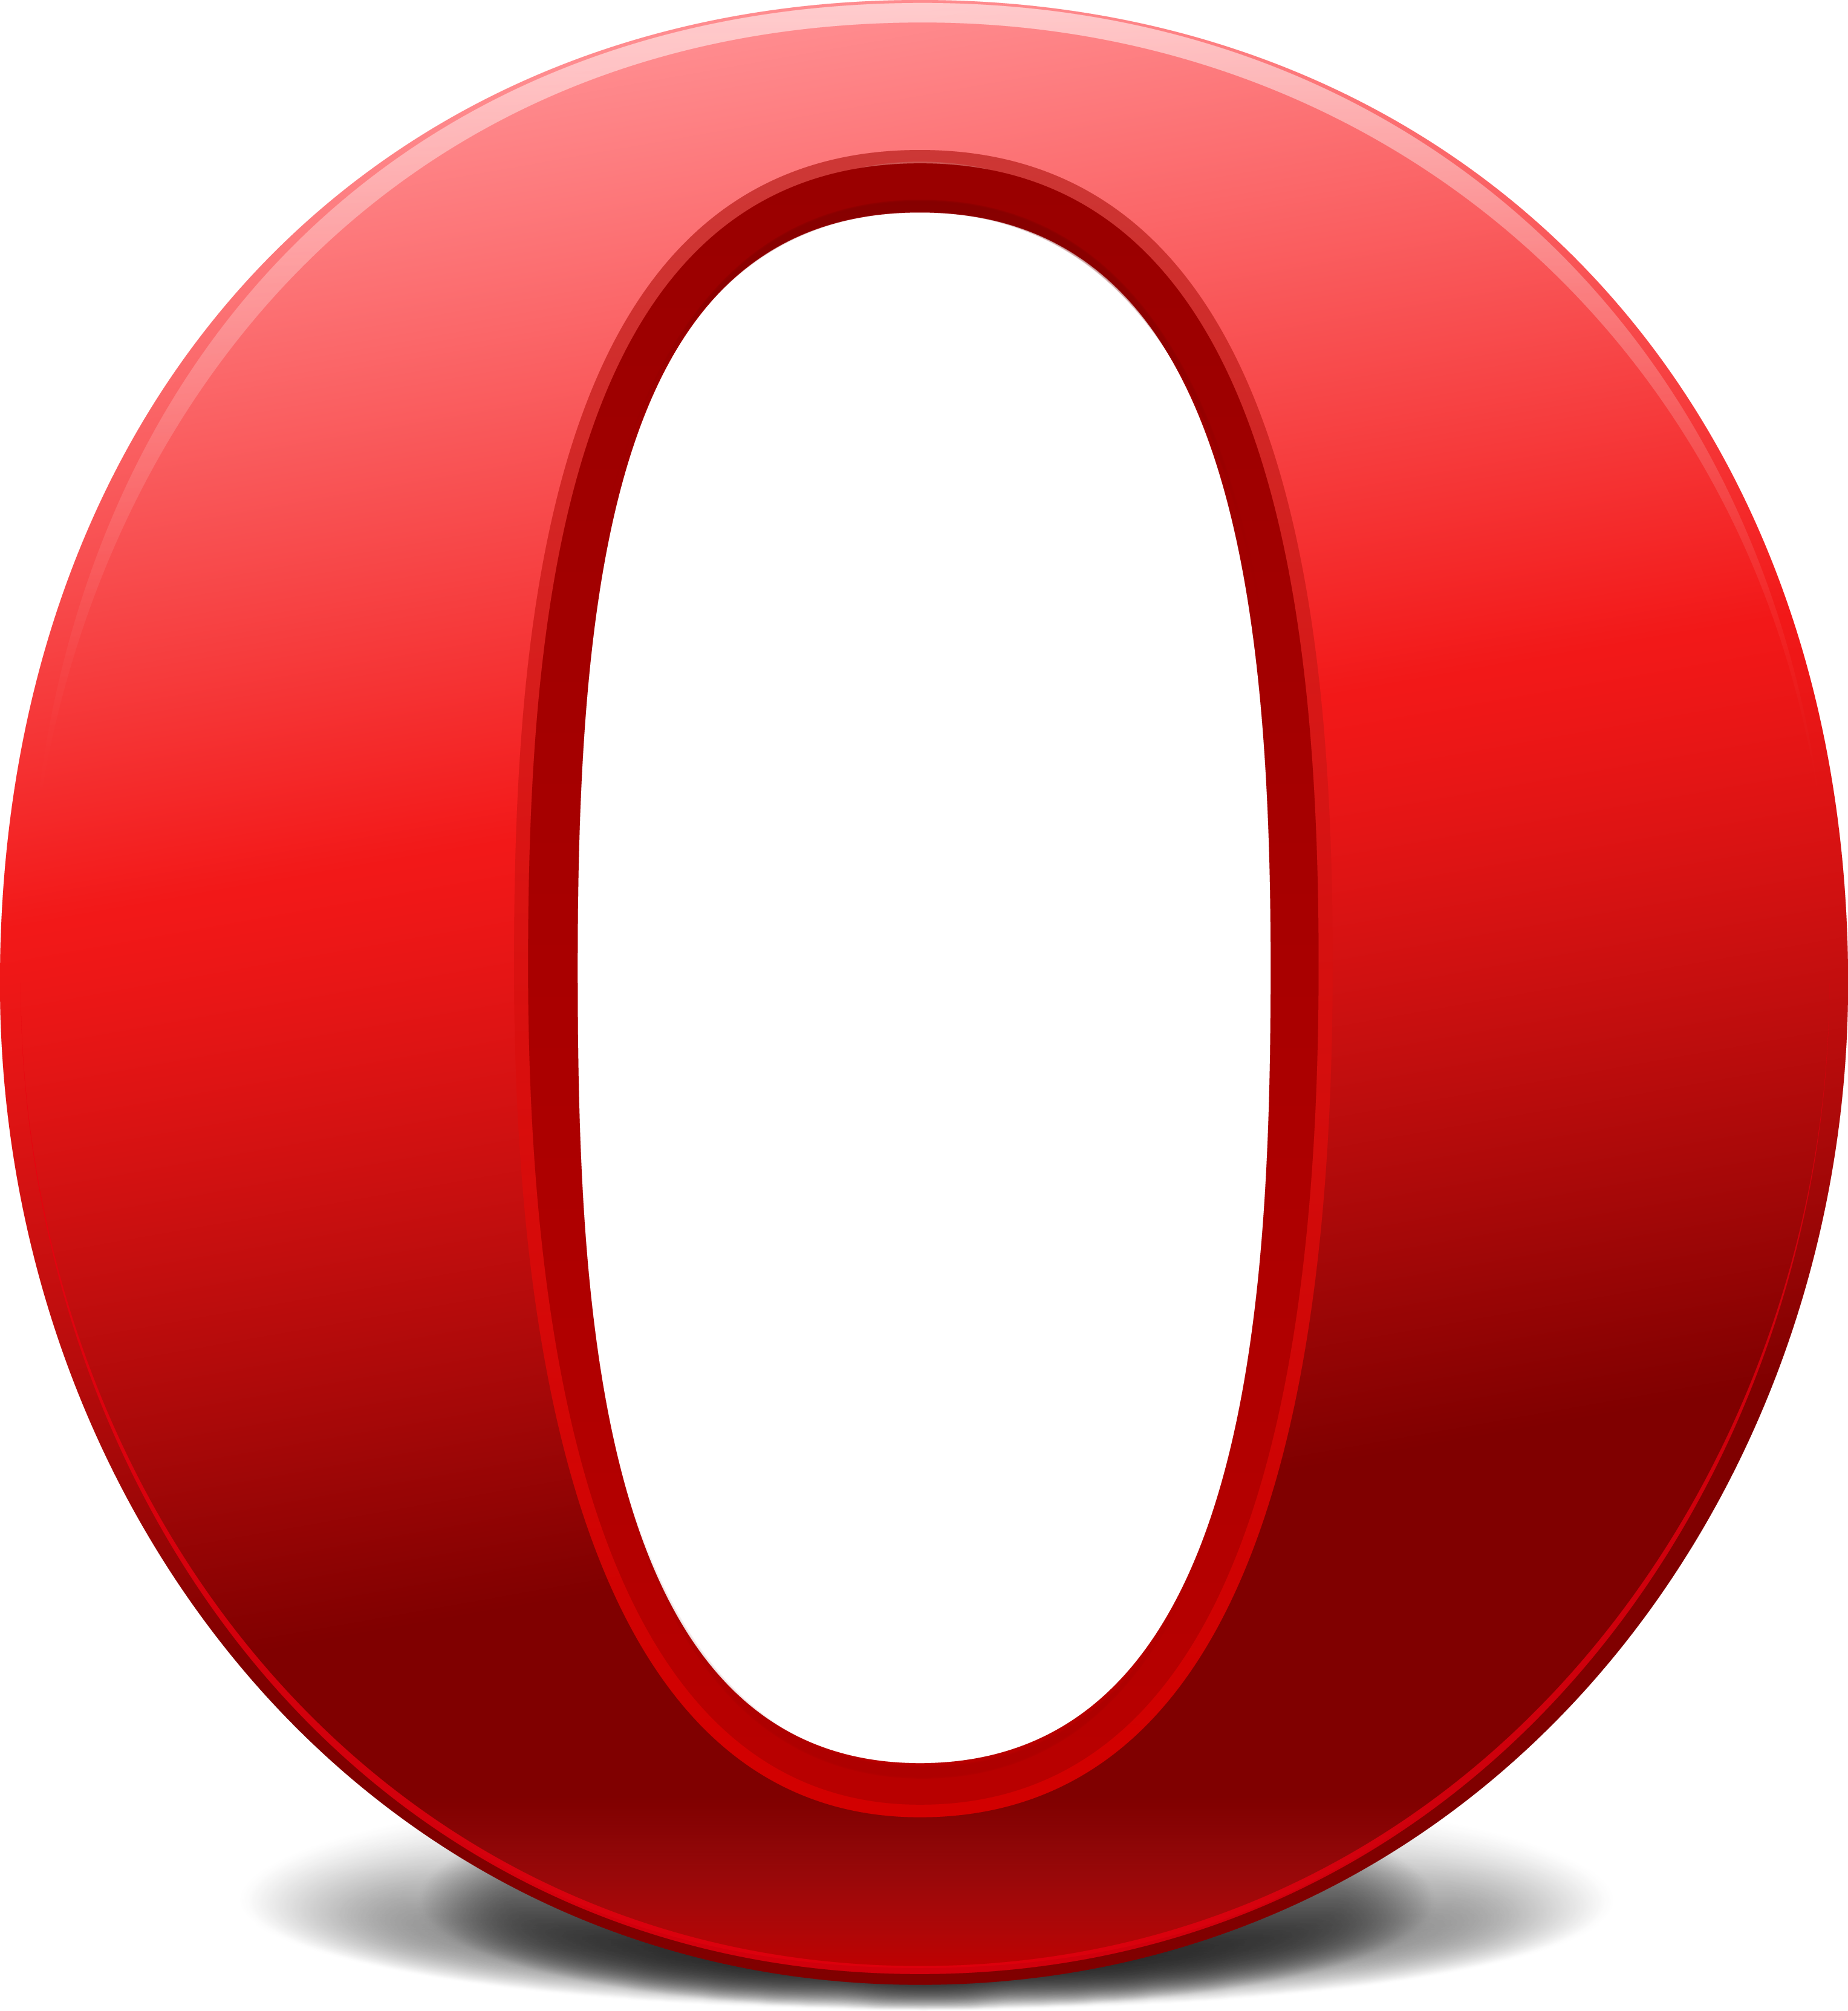 Opera-icon-high-res.png